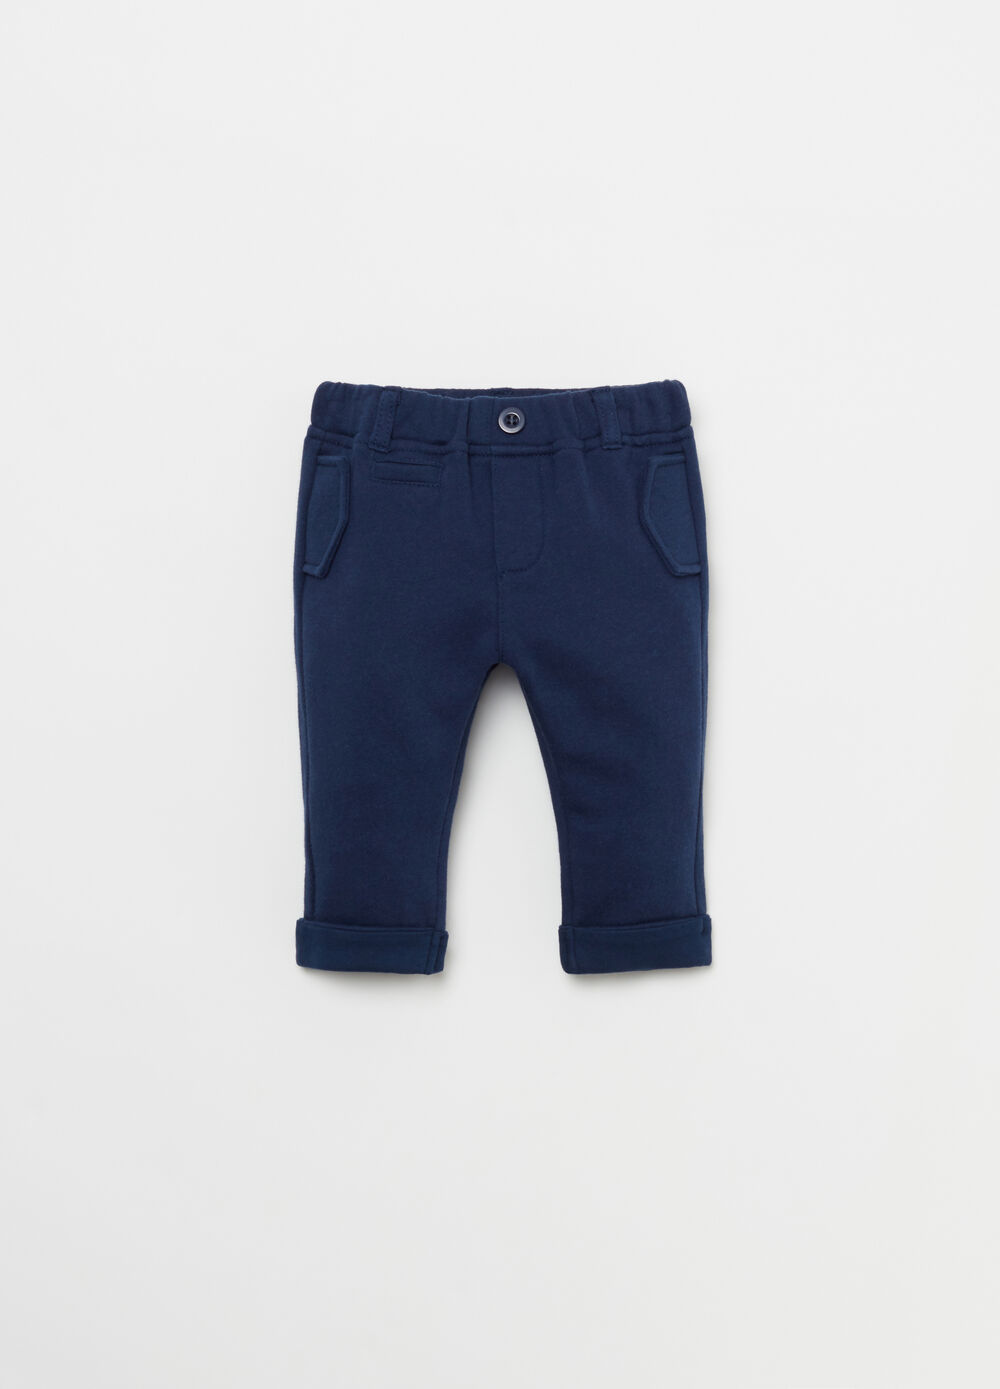 BCI 100% cotton trousers with turn-ups